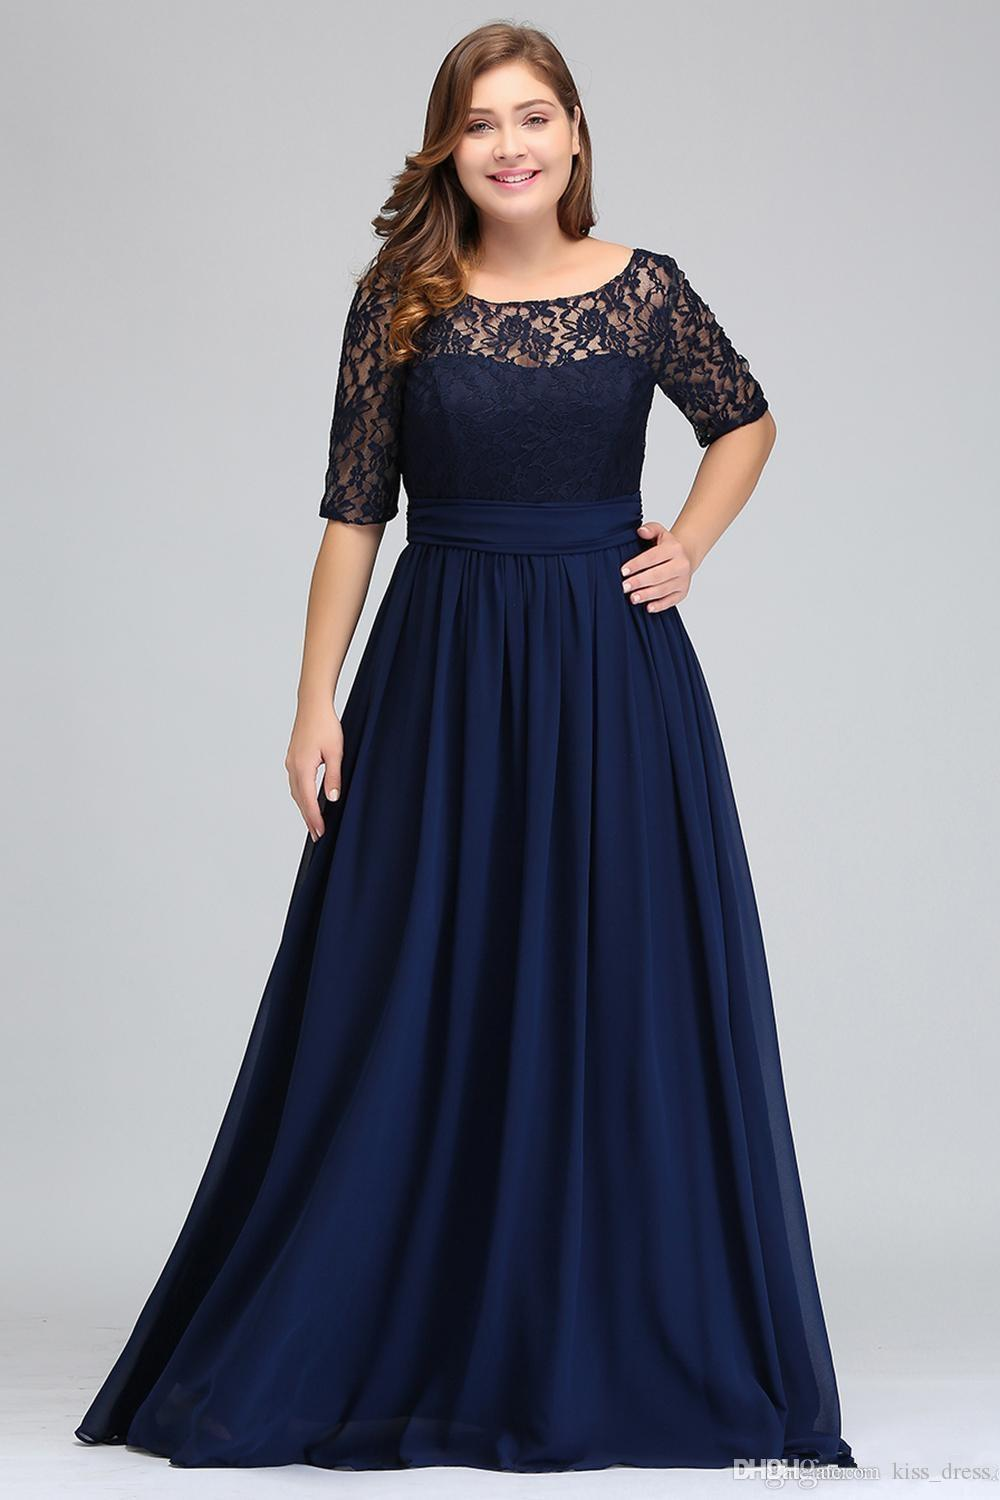 Plus Size Navy Blue Lace Mother Of The Bride Dresses 2019 A Line Half  Sleeve Chiffon Wedding Guest Dress Formal Evening Party Gowns M92 Mother Of  The ...